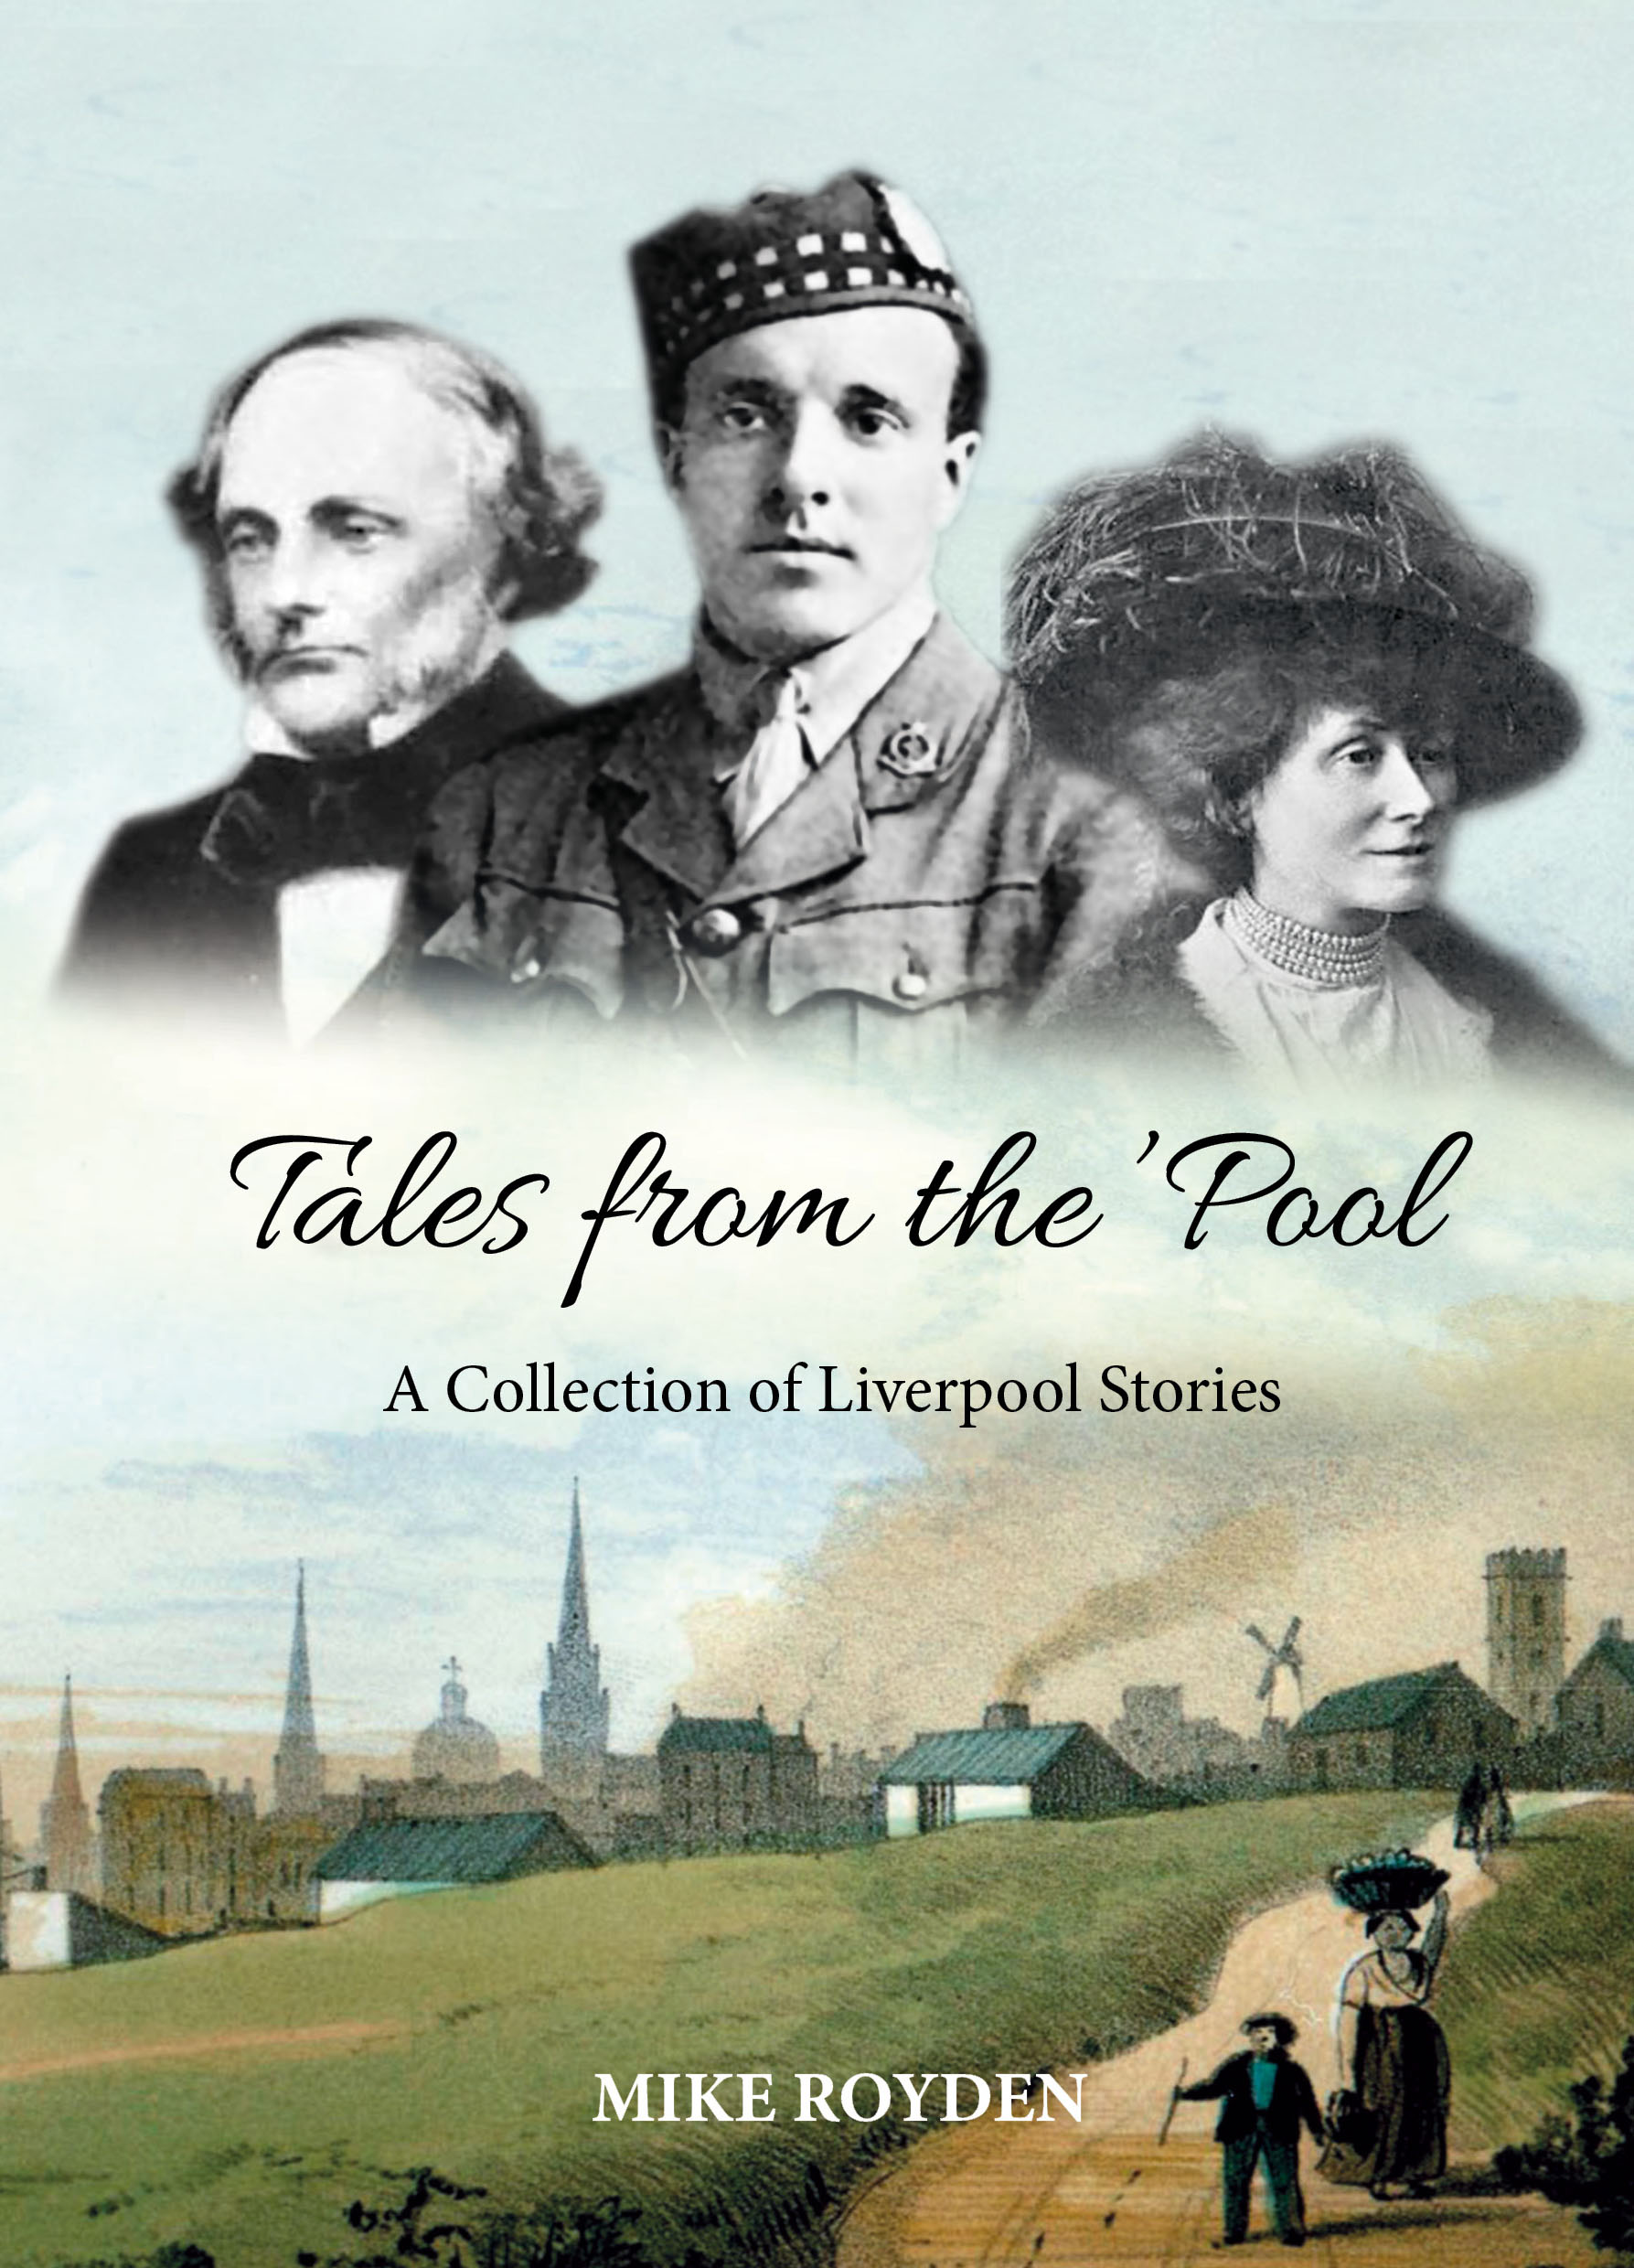 tales-from-the-pool-front-cover.jpg